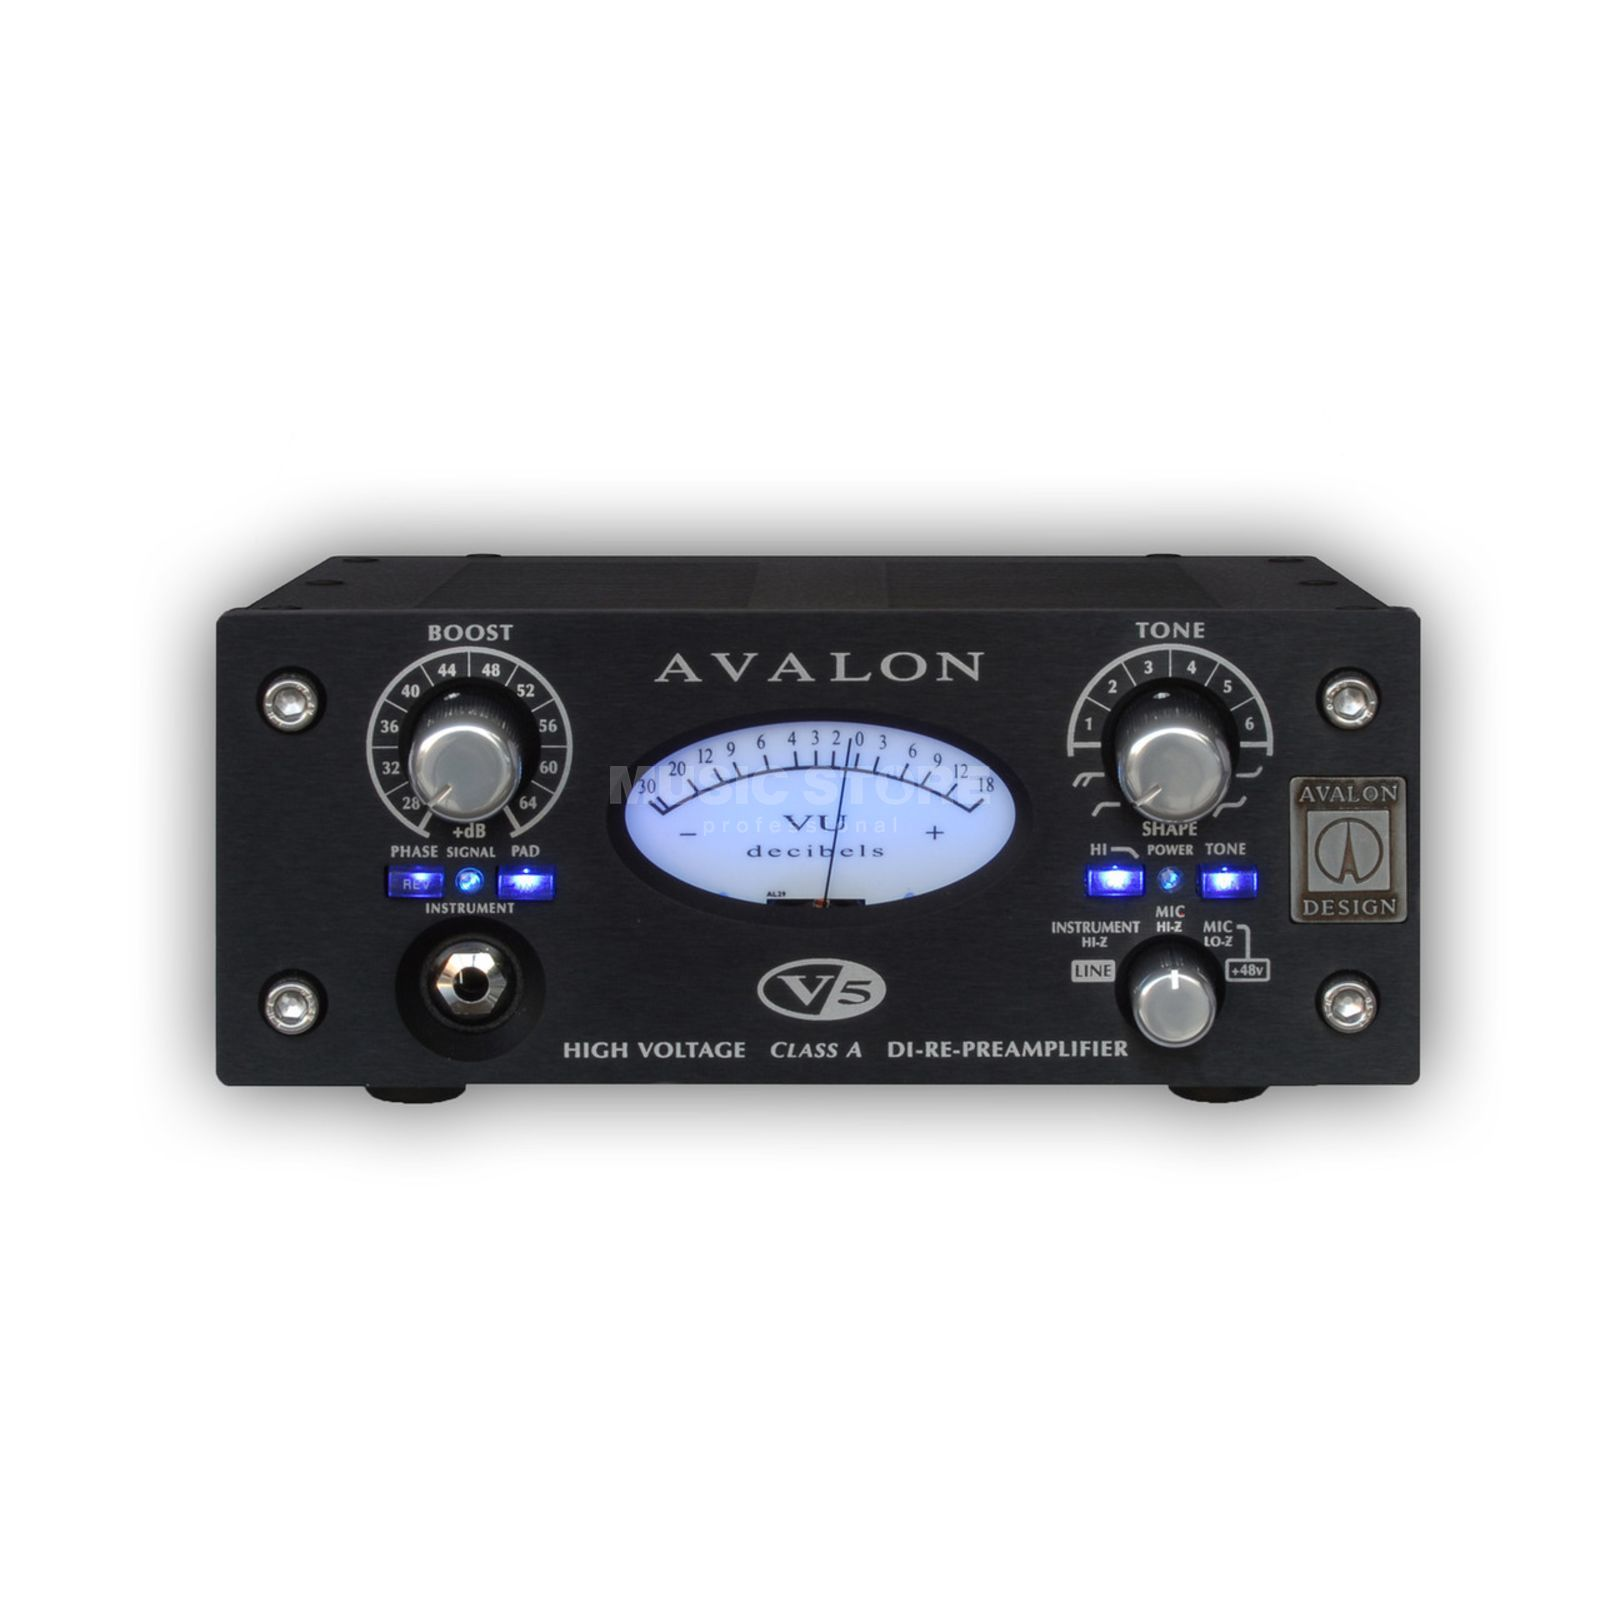 Avalon Design V5 Black Edition 1-Kanal D.I.-Re-Mic Preamp Produktbild